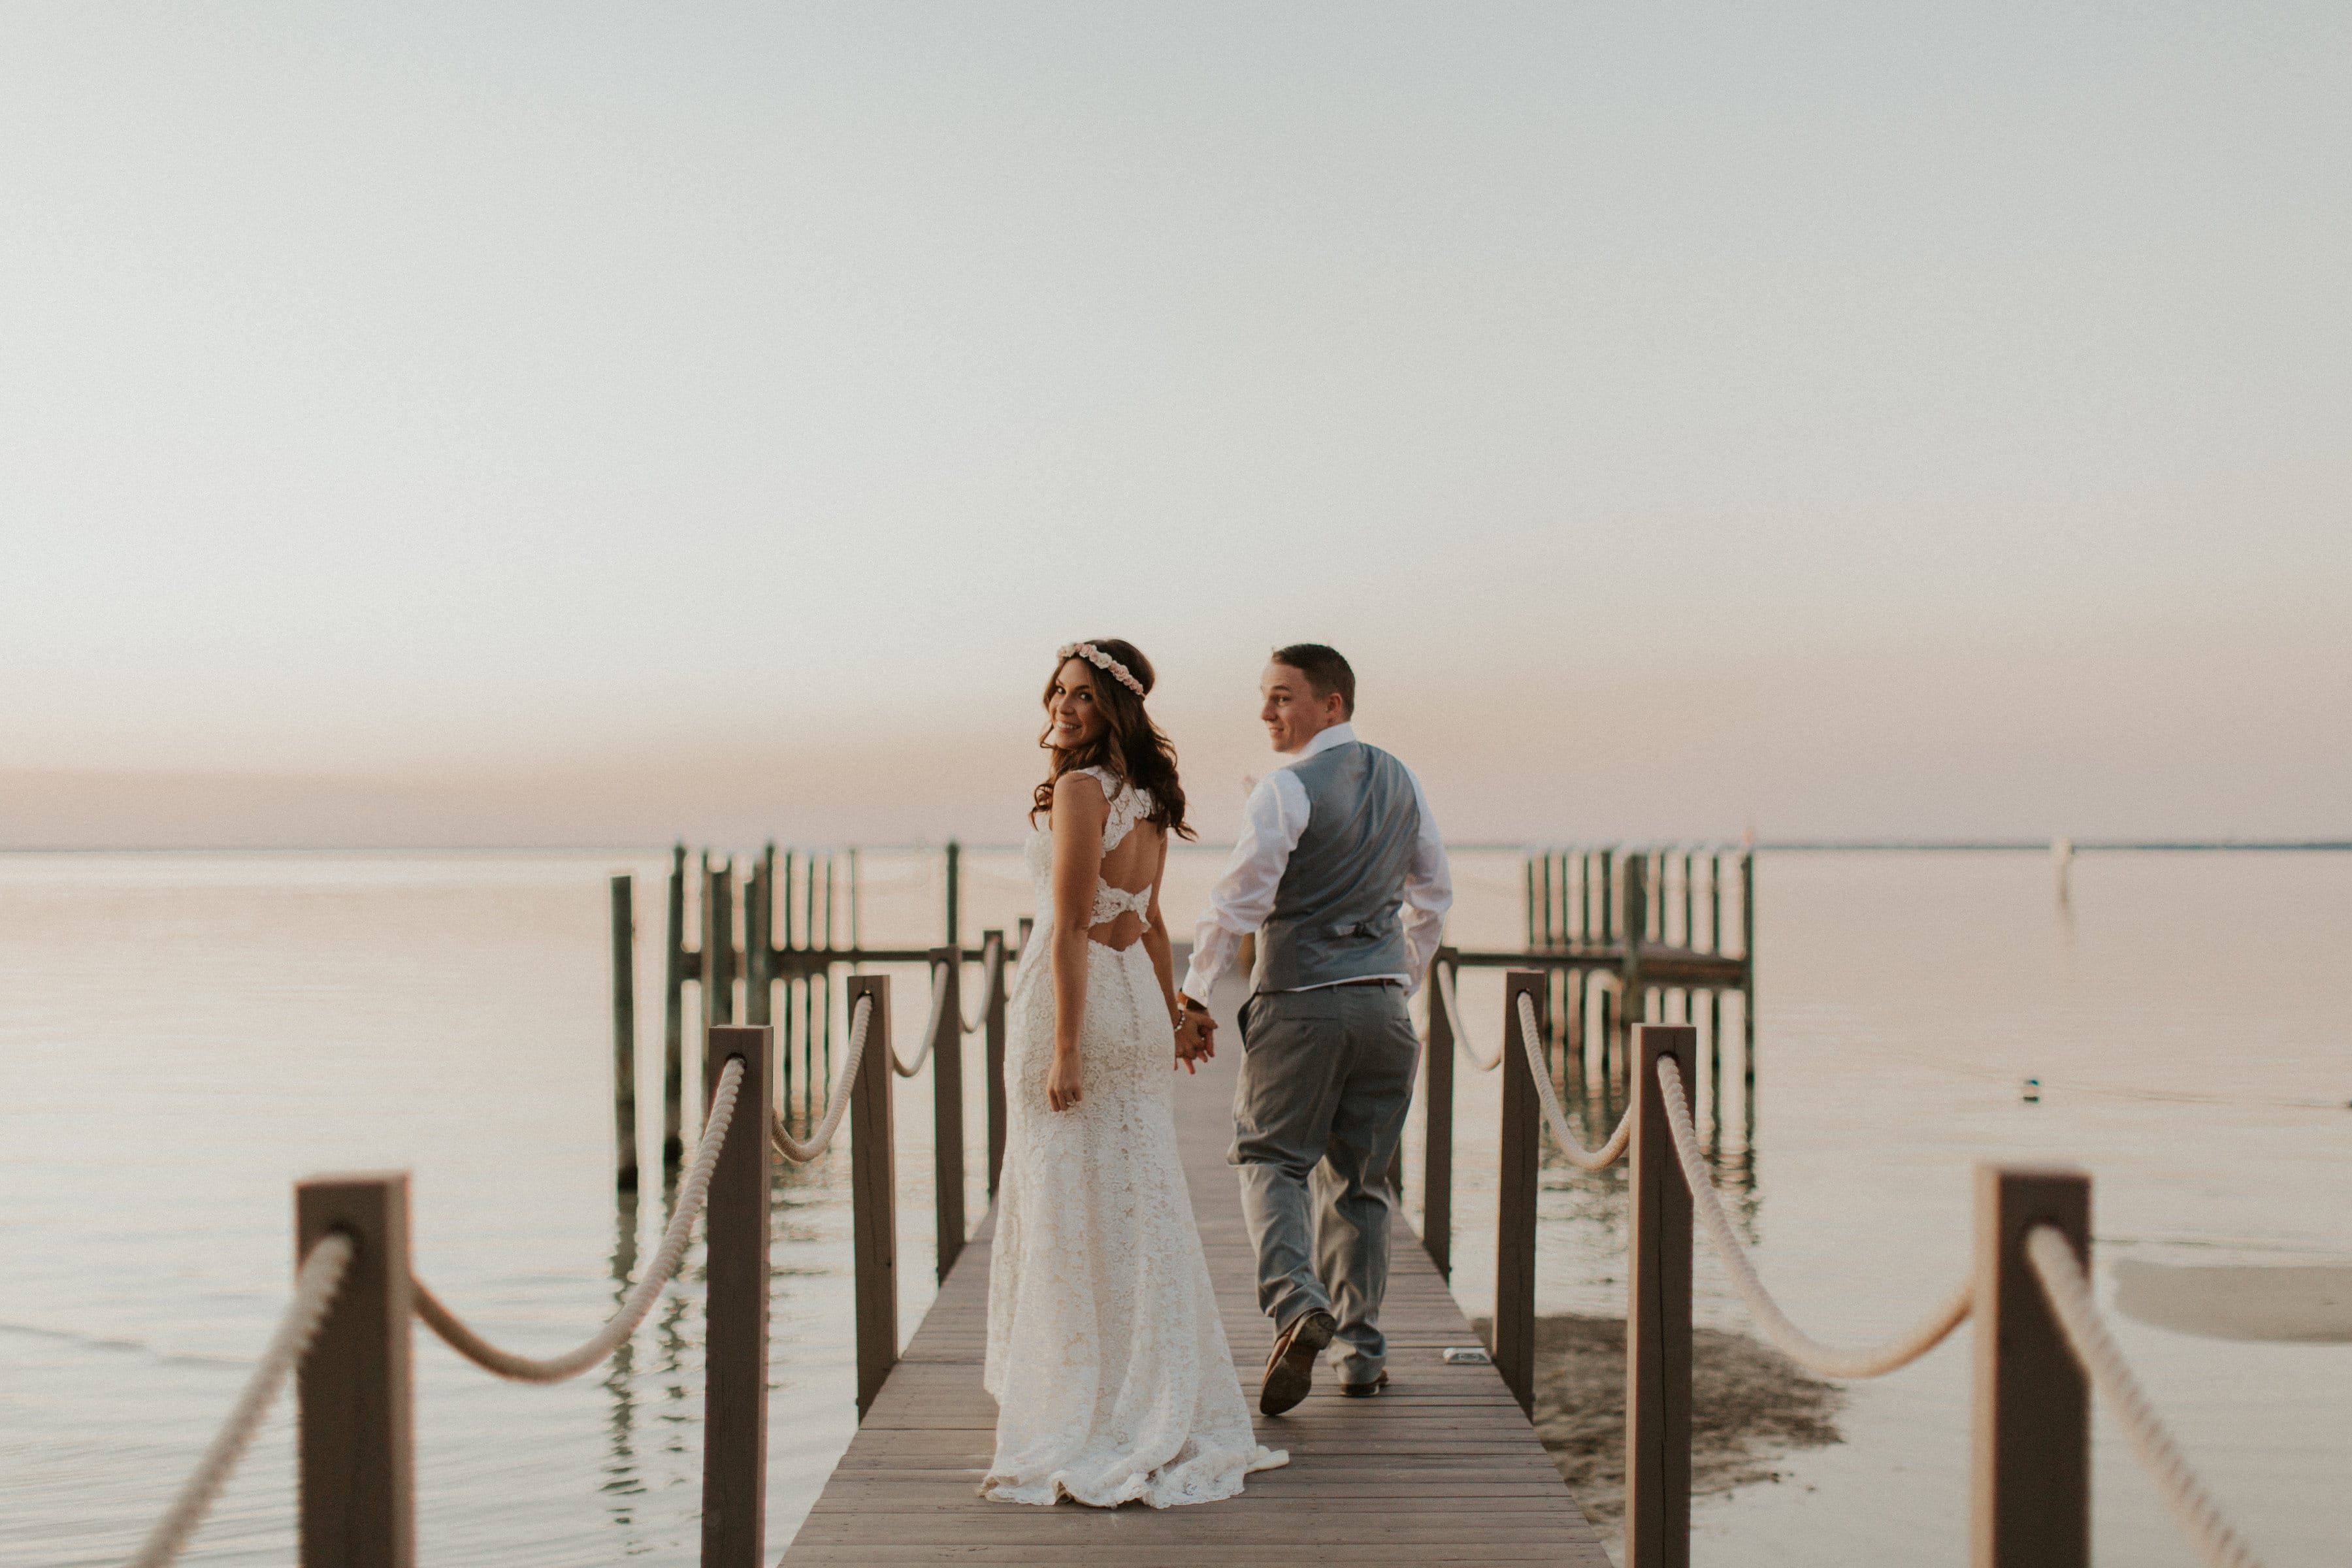 Bride and Groom From the Back Walking on Pier After Their Wedding Ceremony